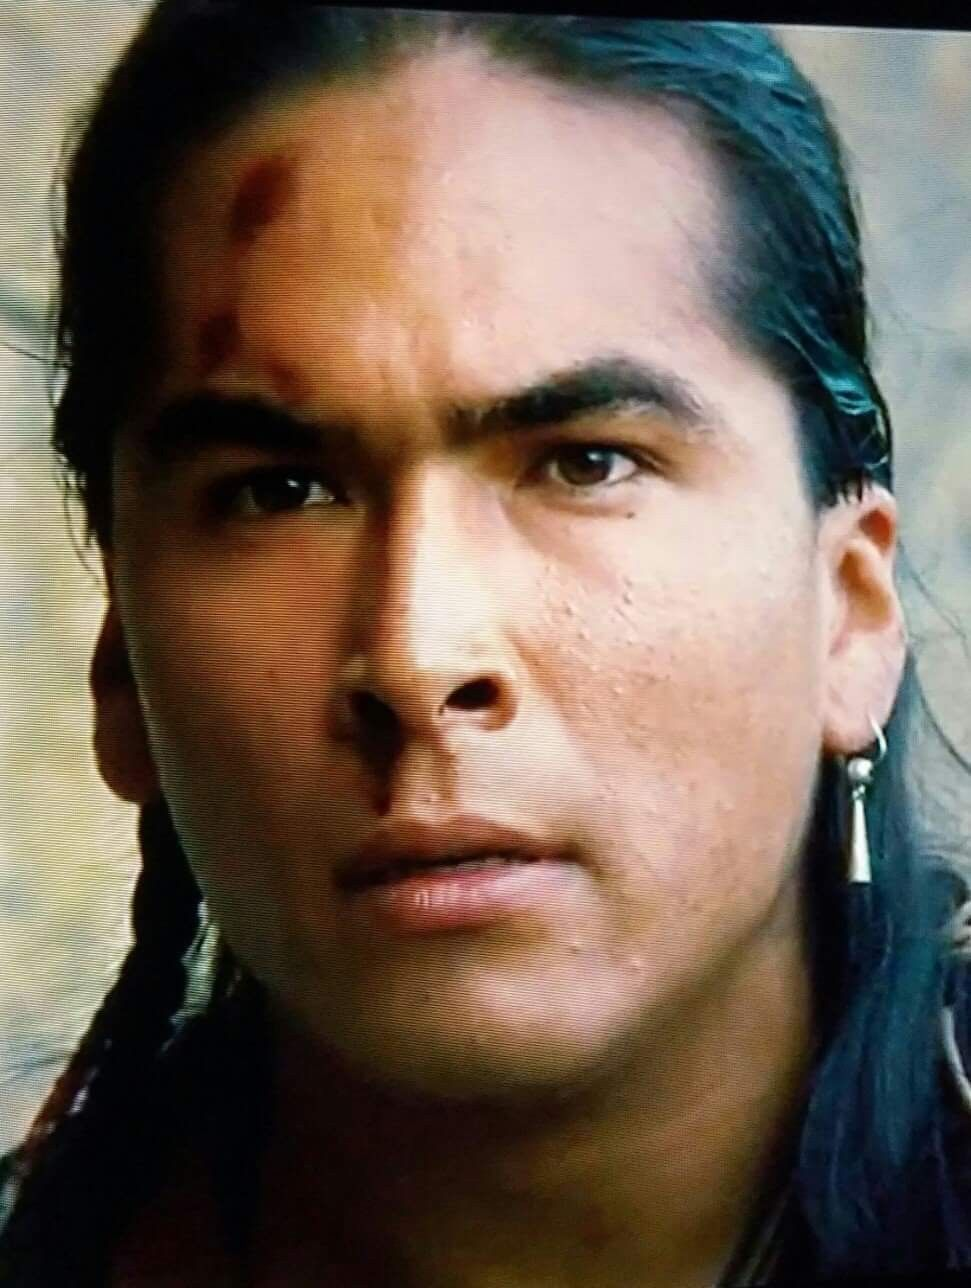 Eric Schweig As Uncas In Last Of The Mohicans Native American Actors Native American Men Eric Schweig Mohicans — main title 04:29. eric schweig as uncas in last of the